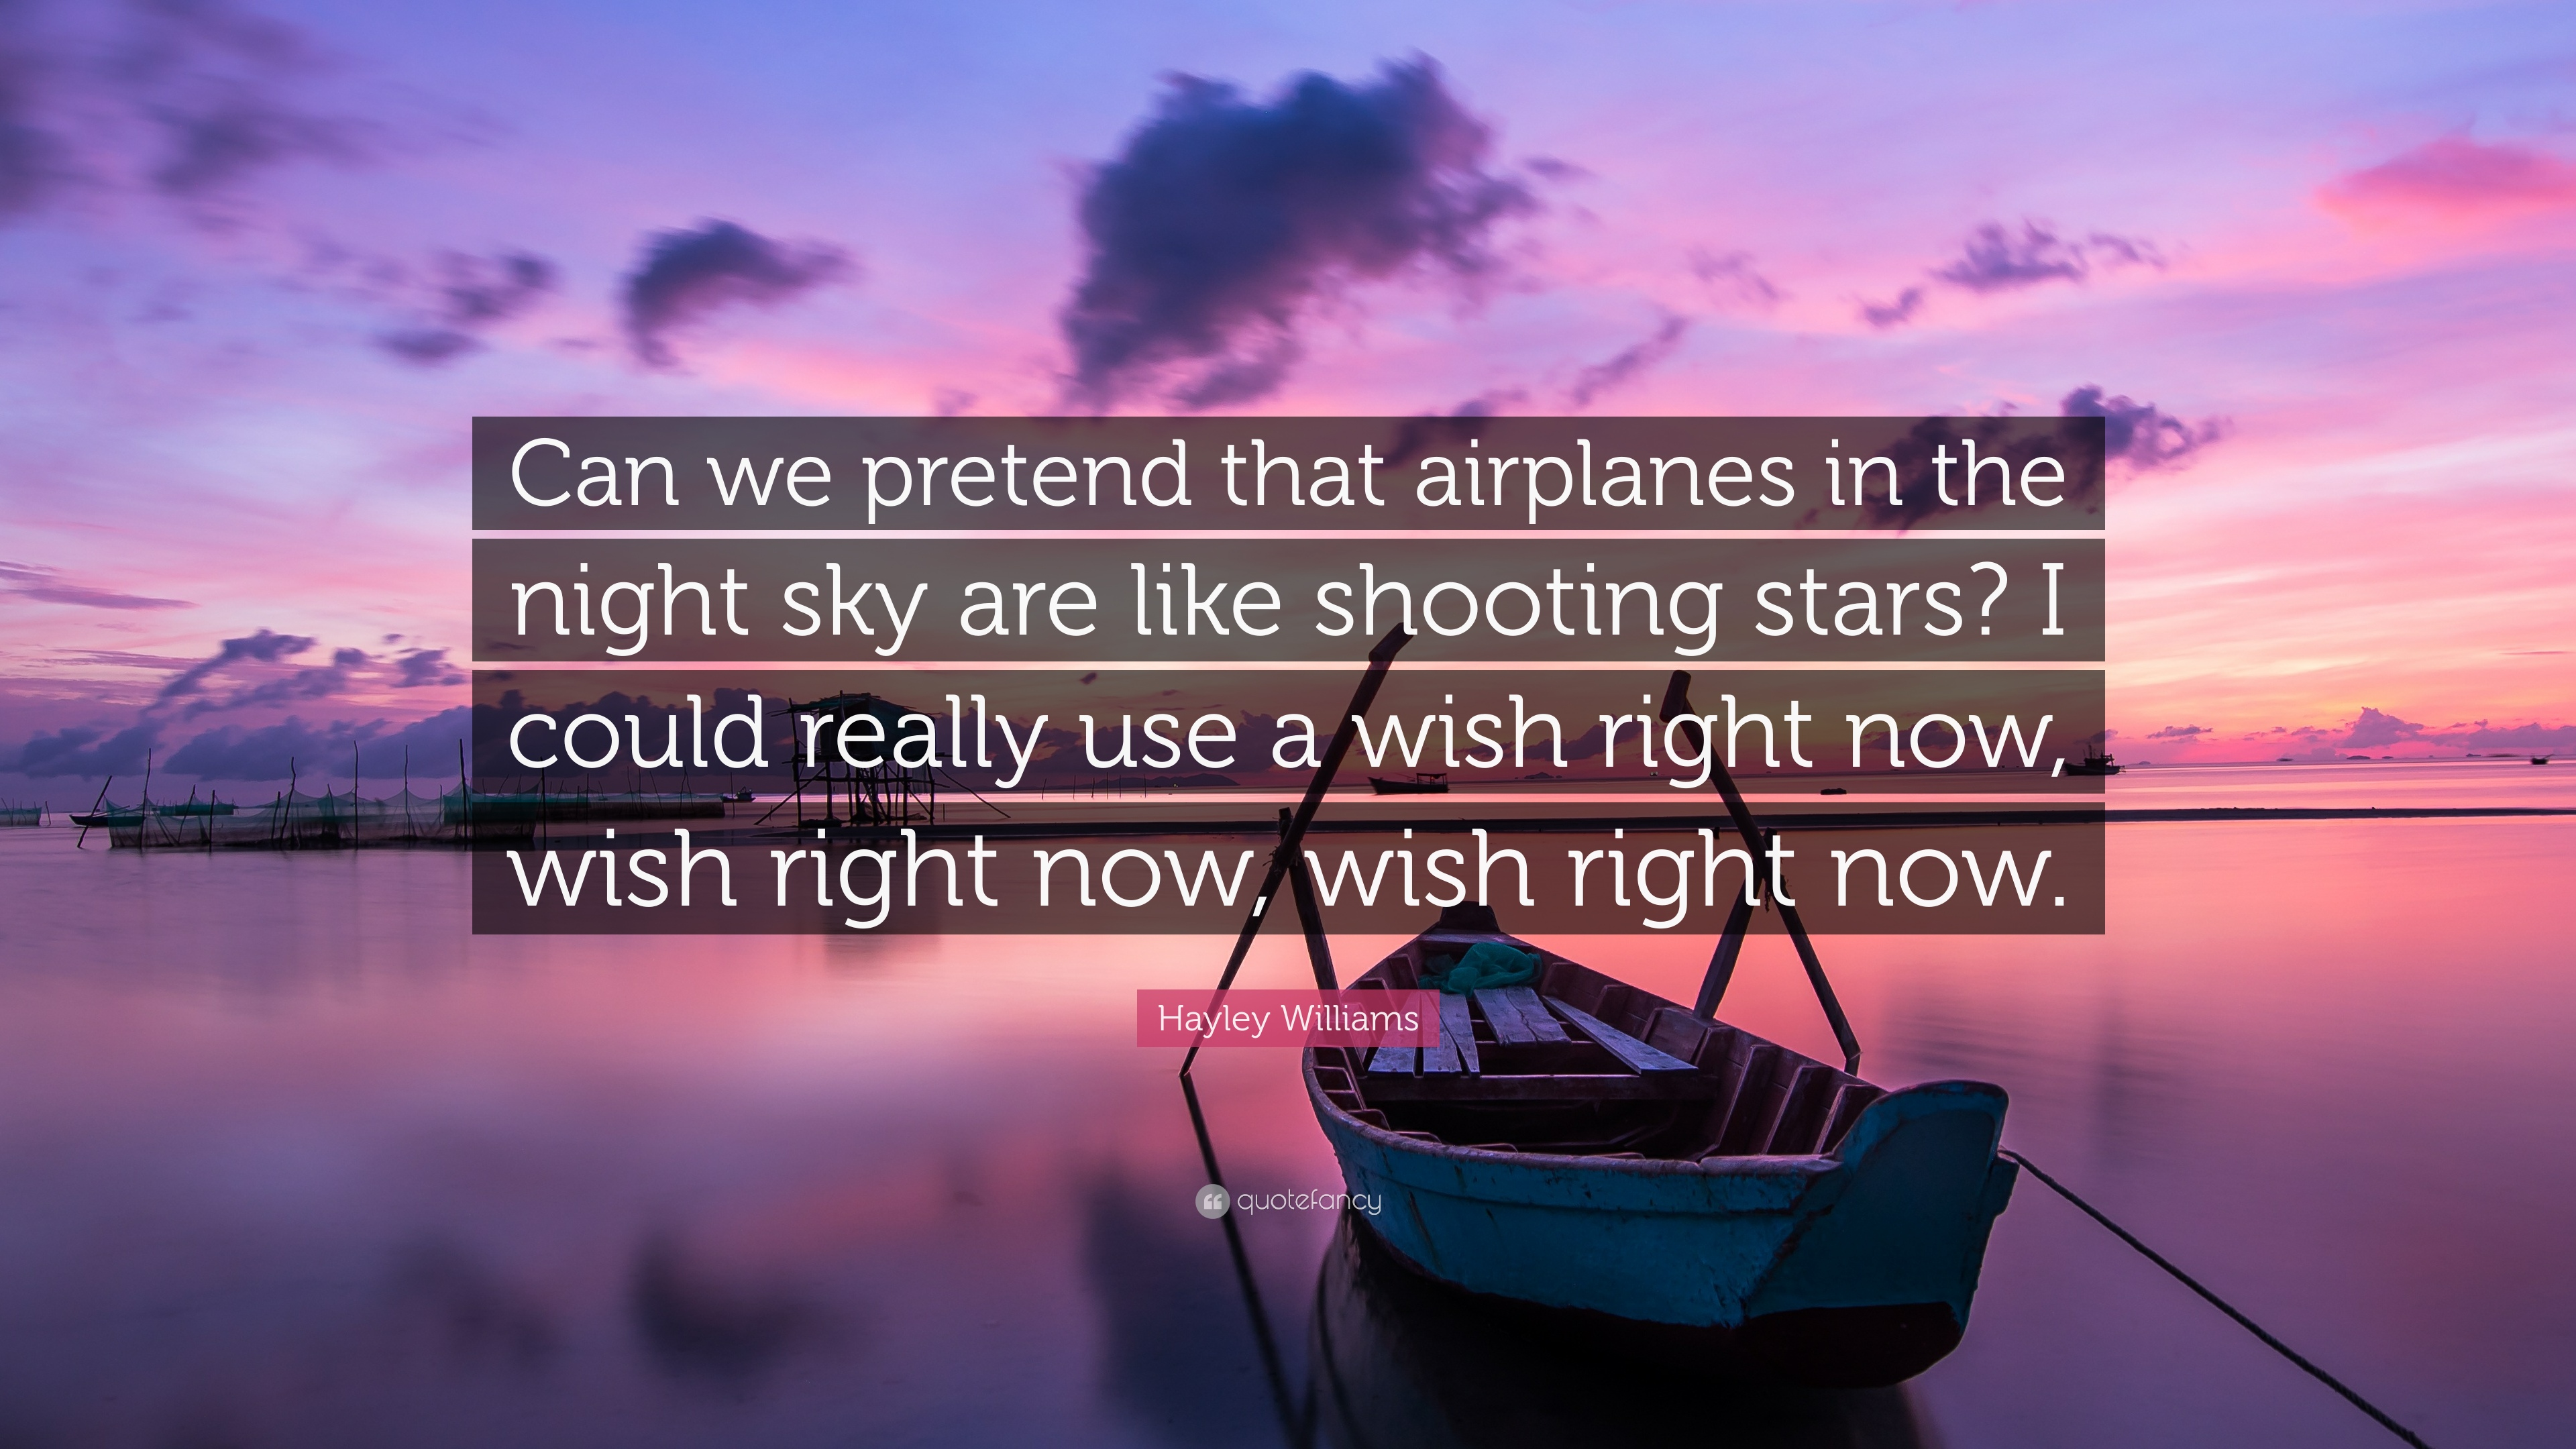 can you pretend that airplanes